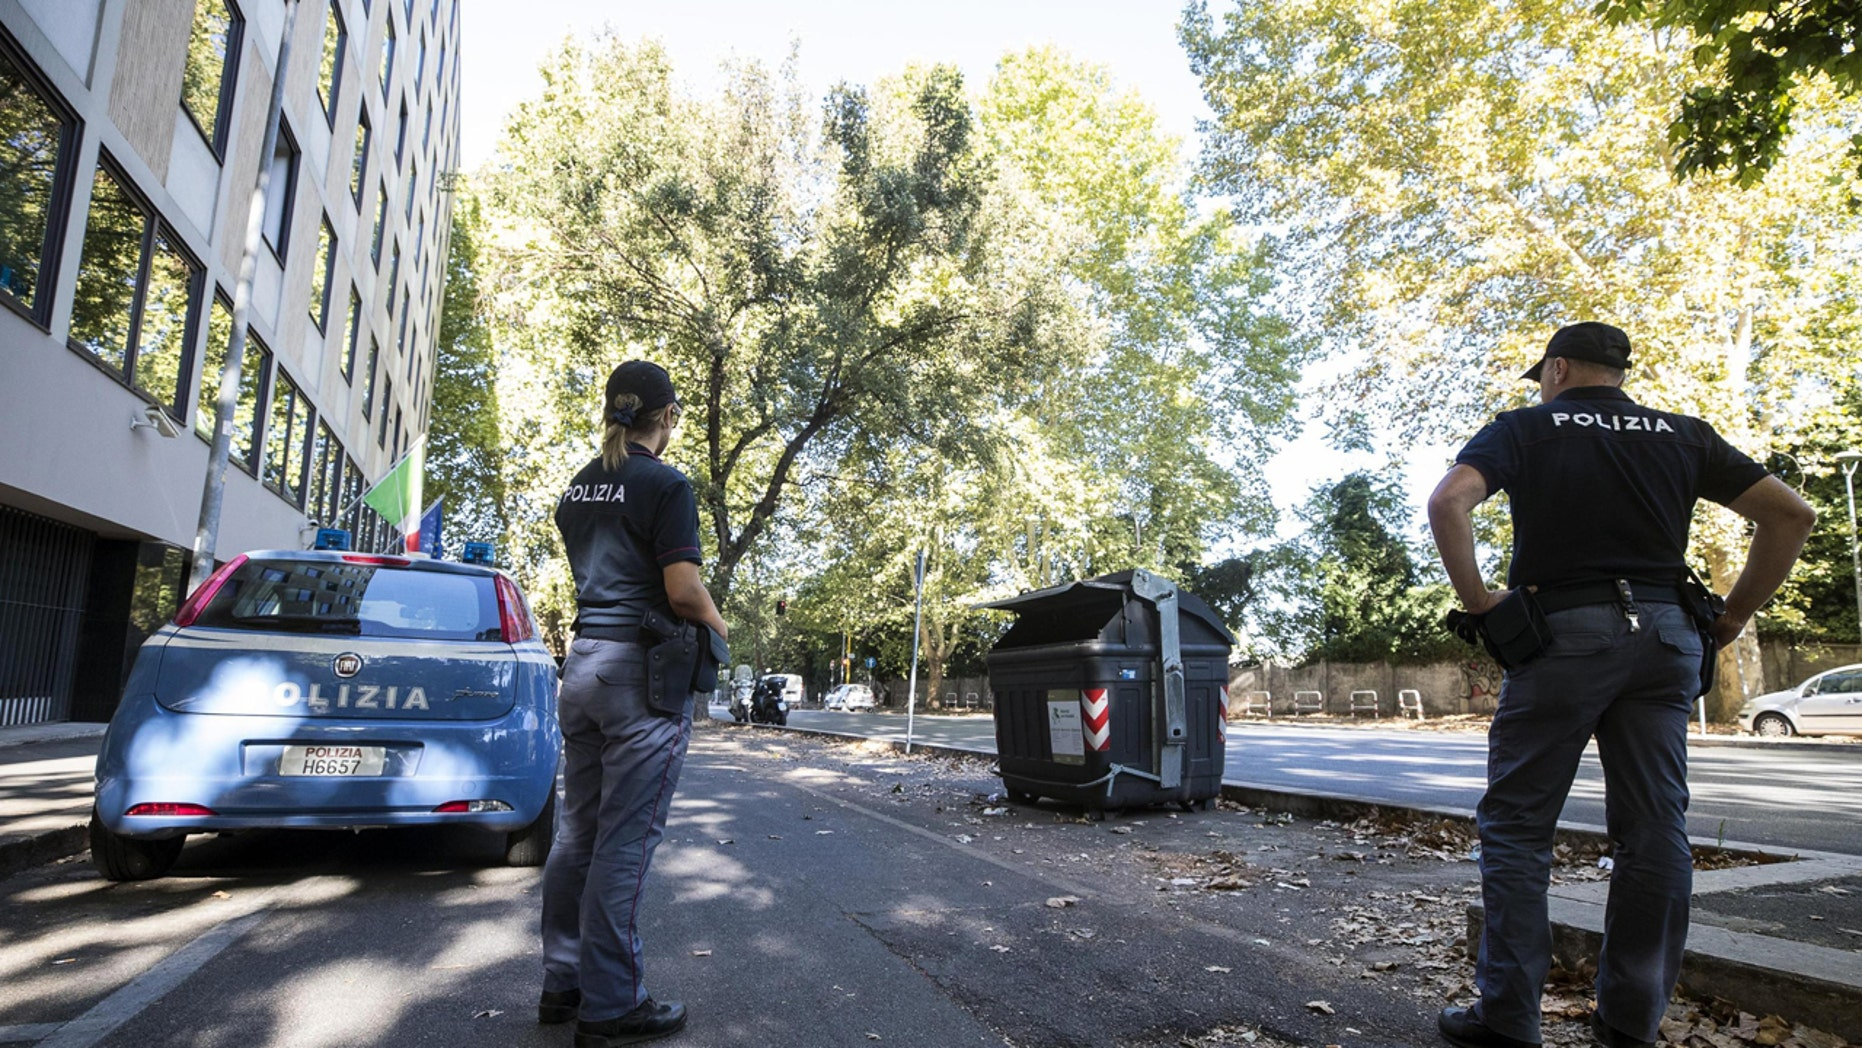 Police officers stand near the site where a trash bin was removed after two amputated legs were found in Rome.